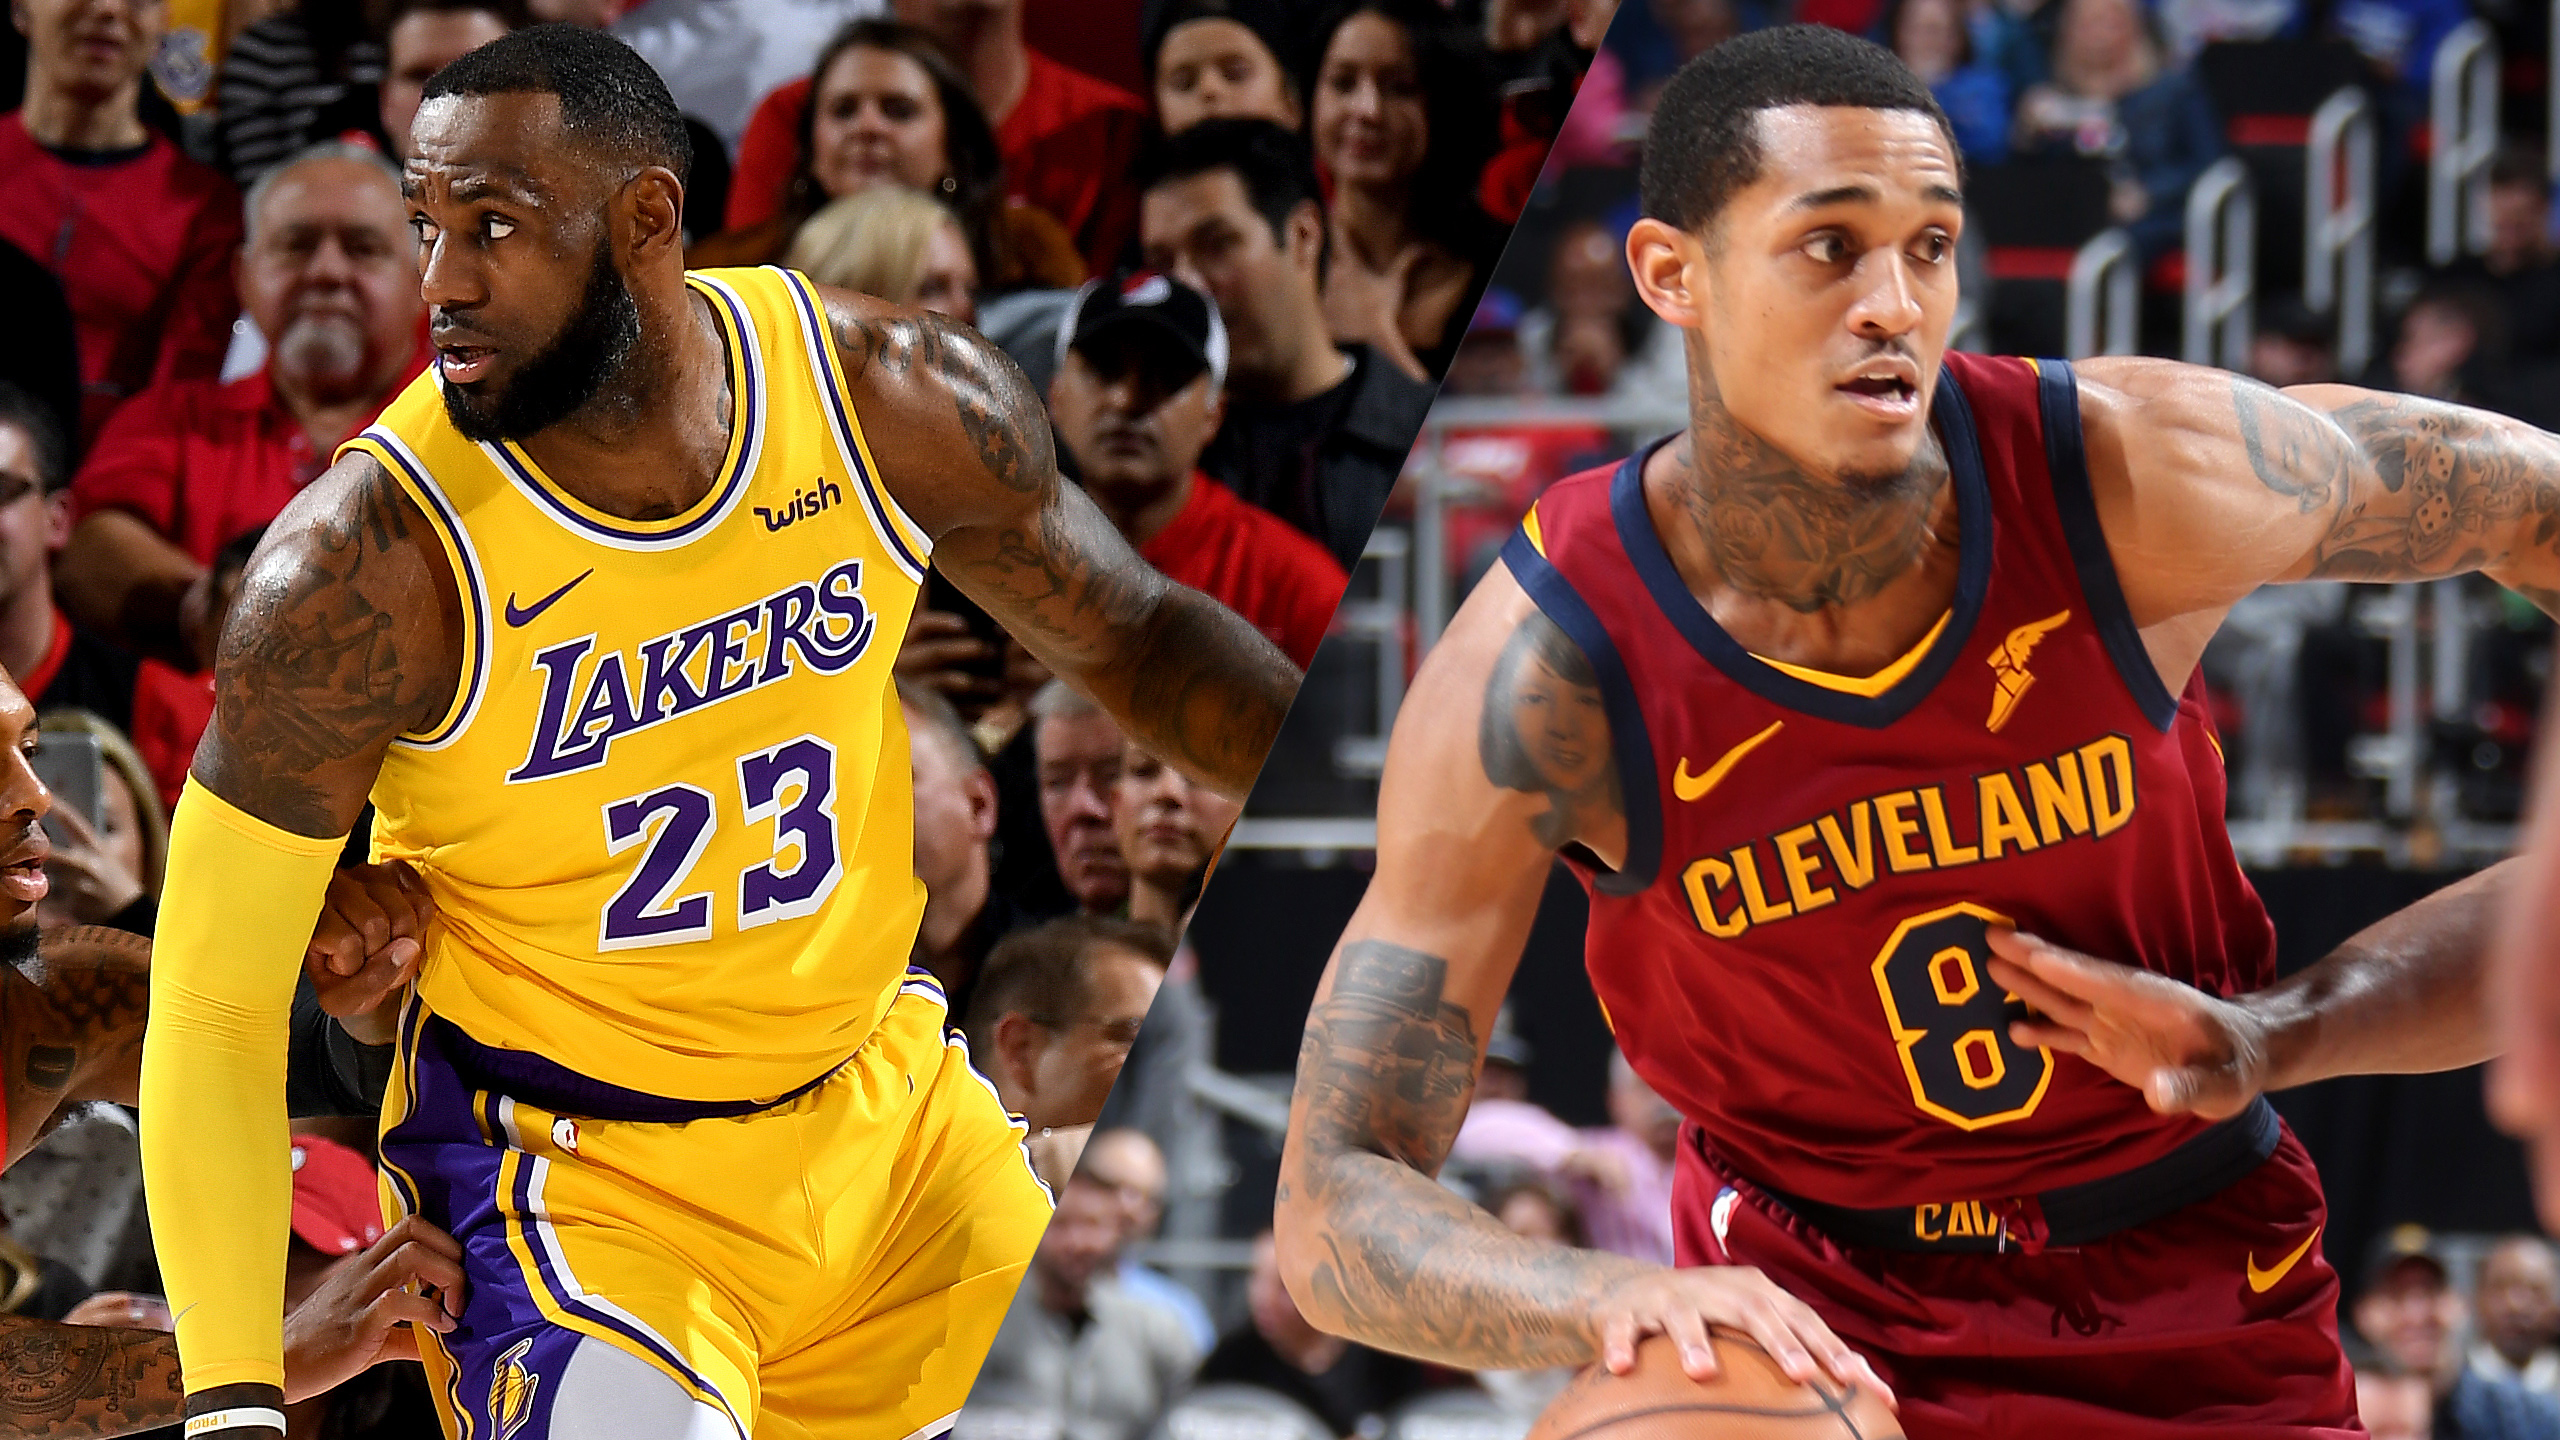 Los Angeles Lakers vs. Cleveland Cavaliers